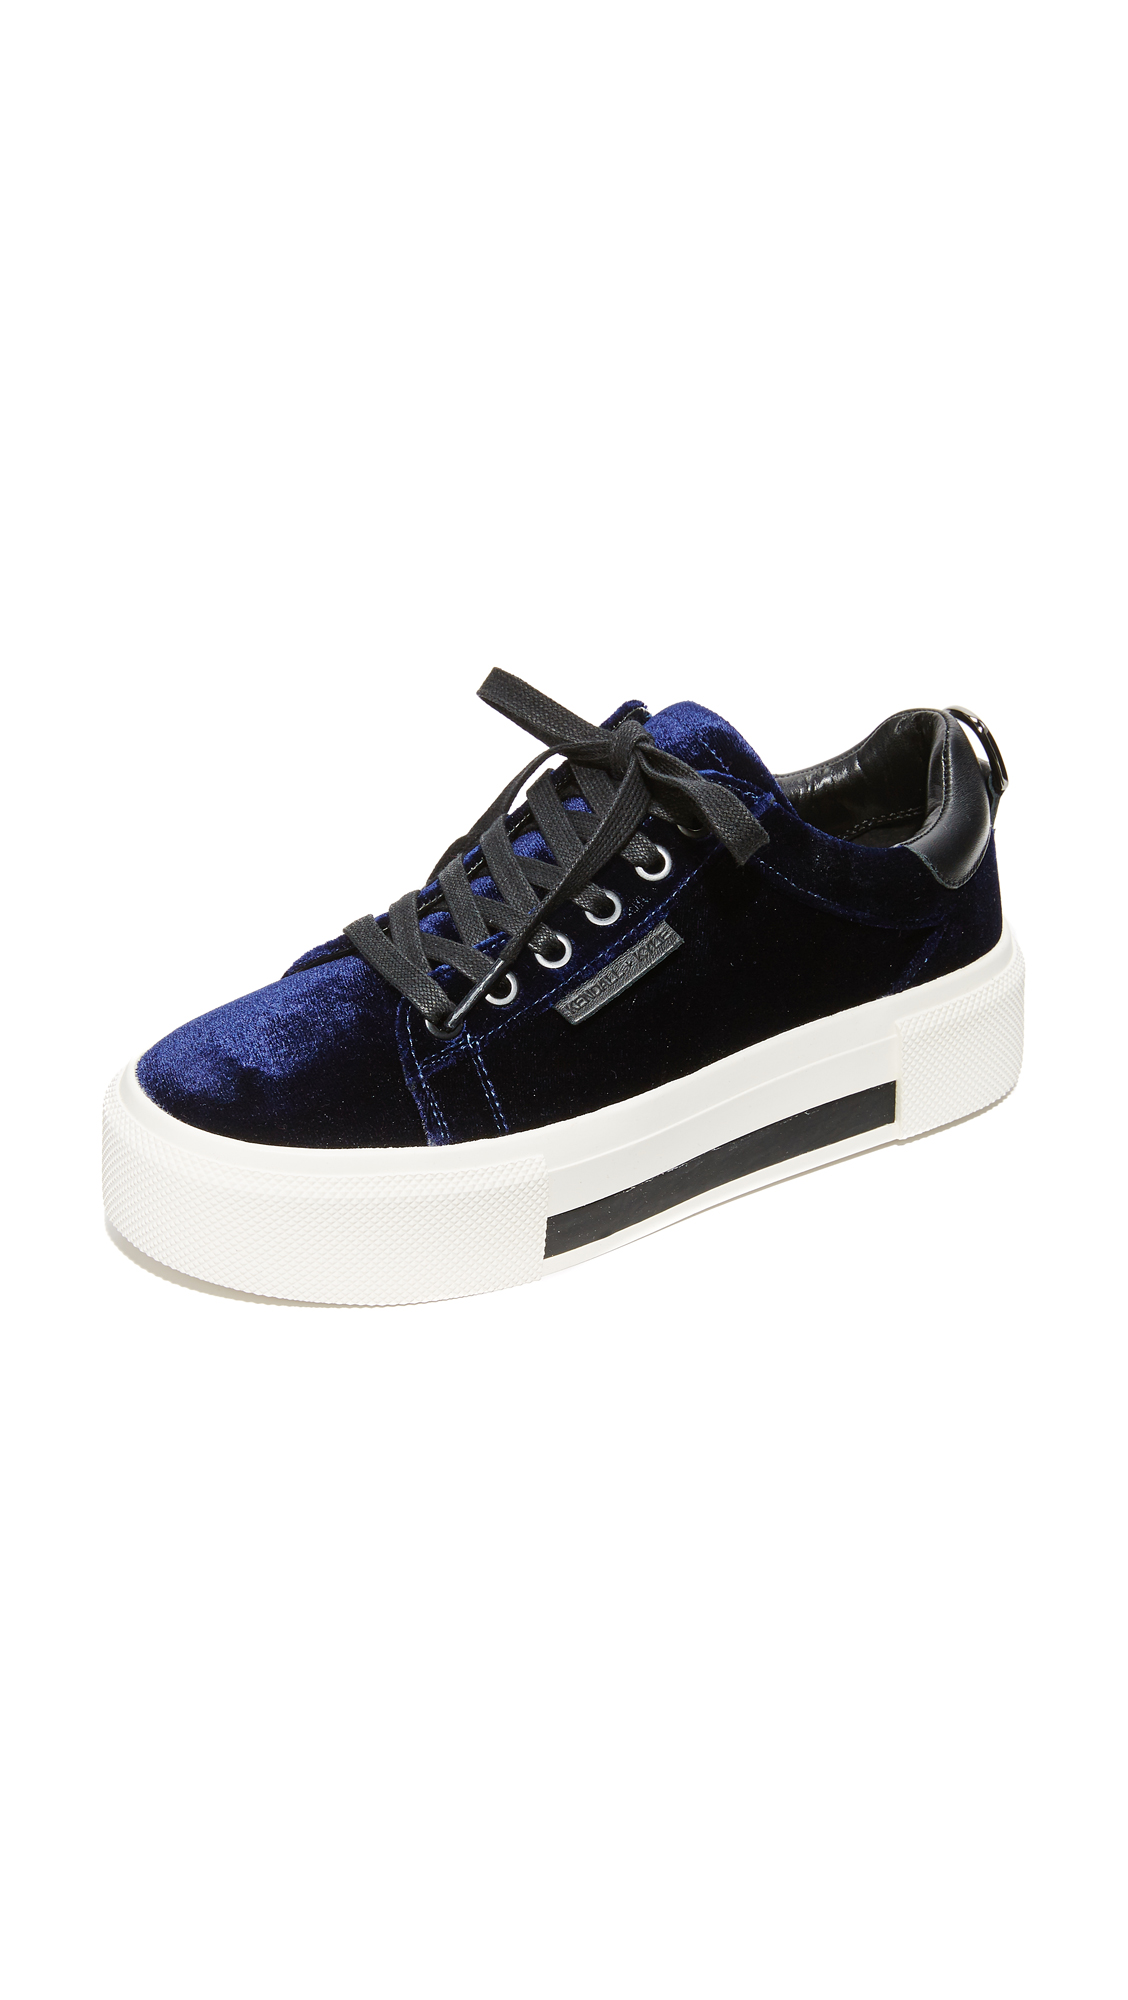 A striped platform adds a substantial lift to these stylish velvet KENDALL + KYLIE sneakers. Metal D ring accent at the leather heel cap. Padded collar and footbed. Lace up closure. Rubber sole. Fabric: Velvet. Imported, China.